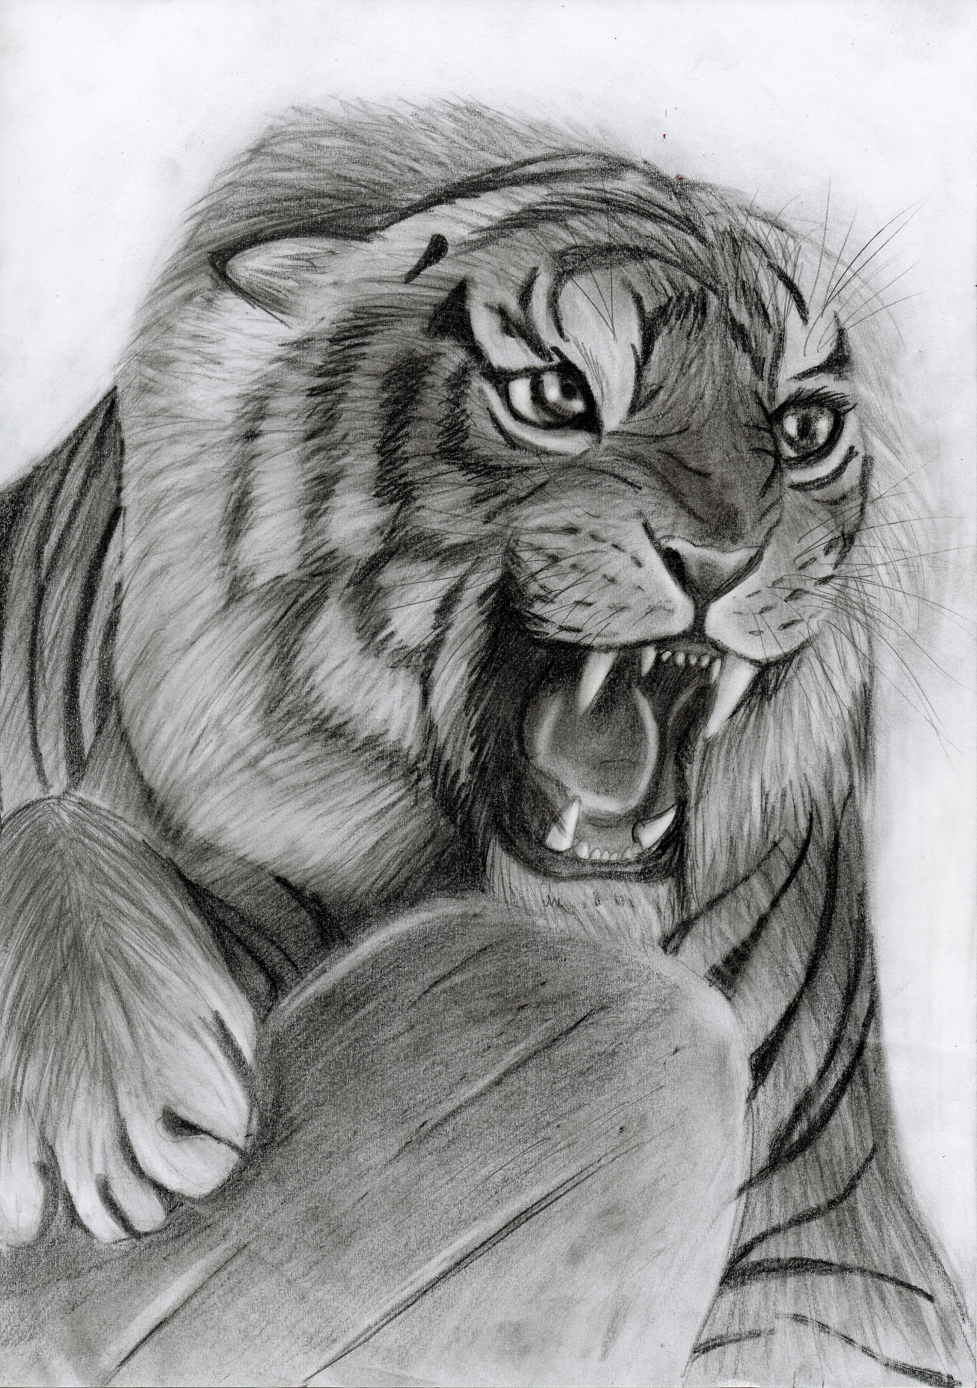 Angry tiger (UPDATE) by Takas15 on DeviantArt